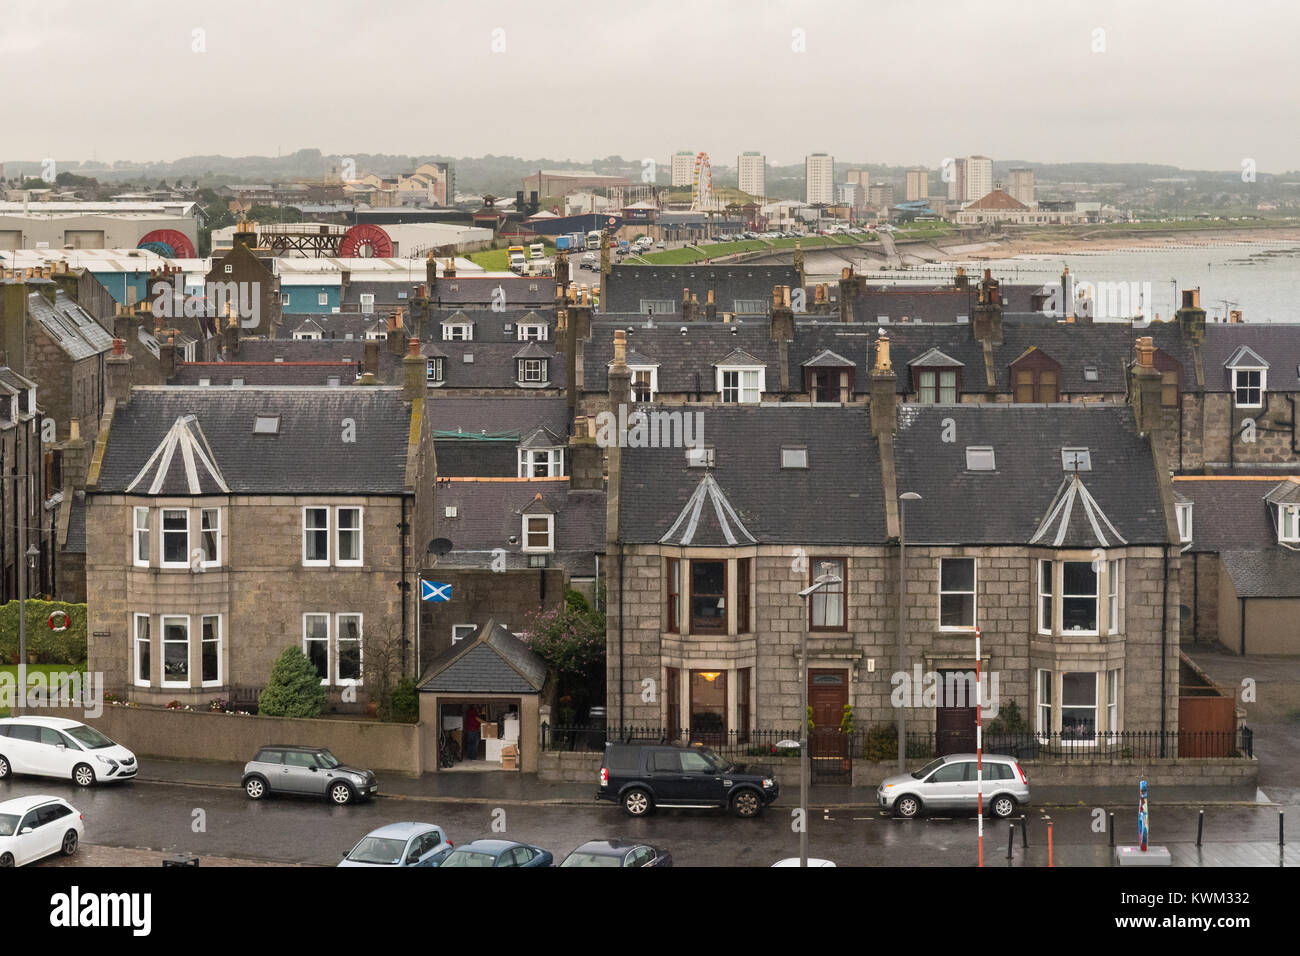 Aberdeen houses at Pocra Quay in the Footdee conservation area, Aberdeen, Scotland, UK - Stock Image